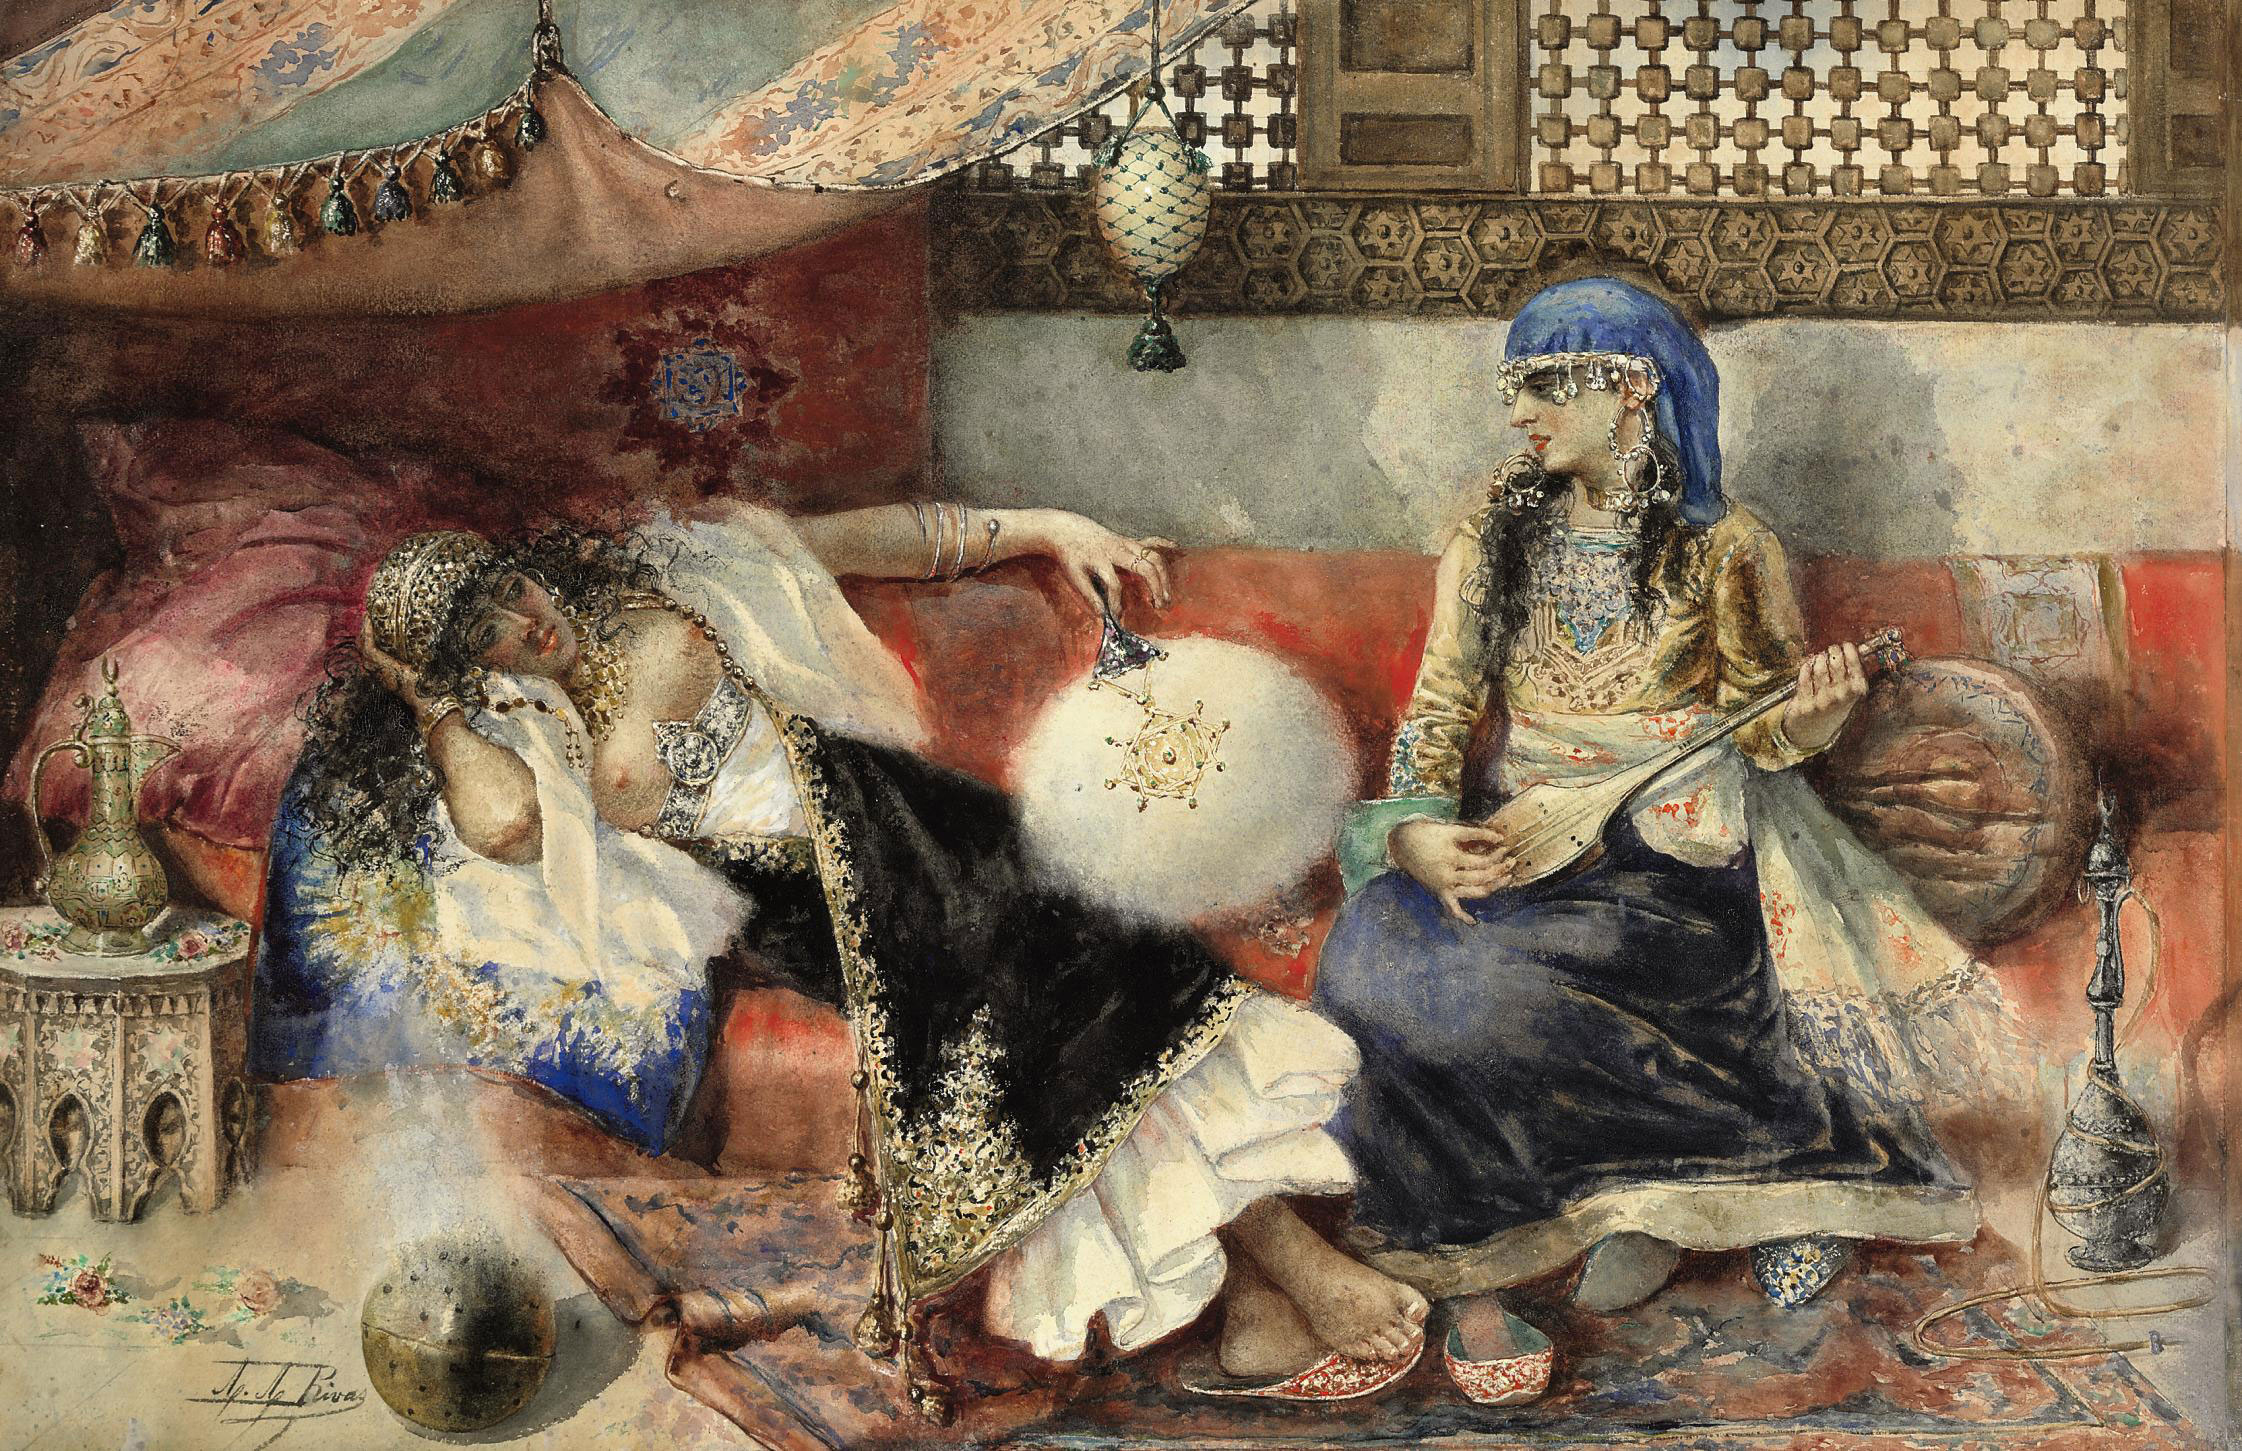 Two women in an Arab interior